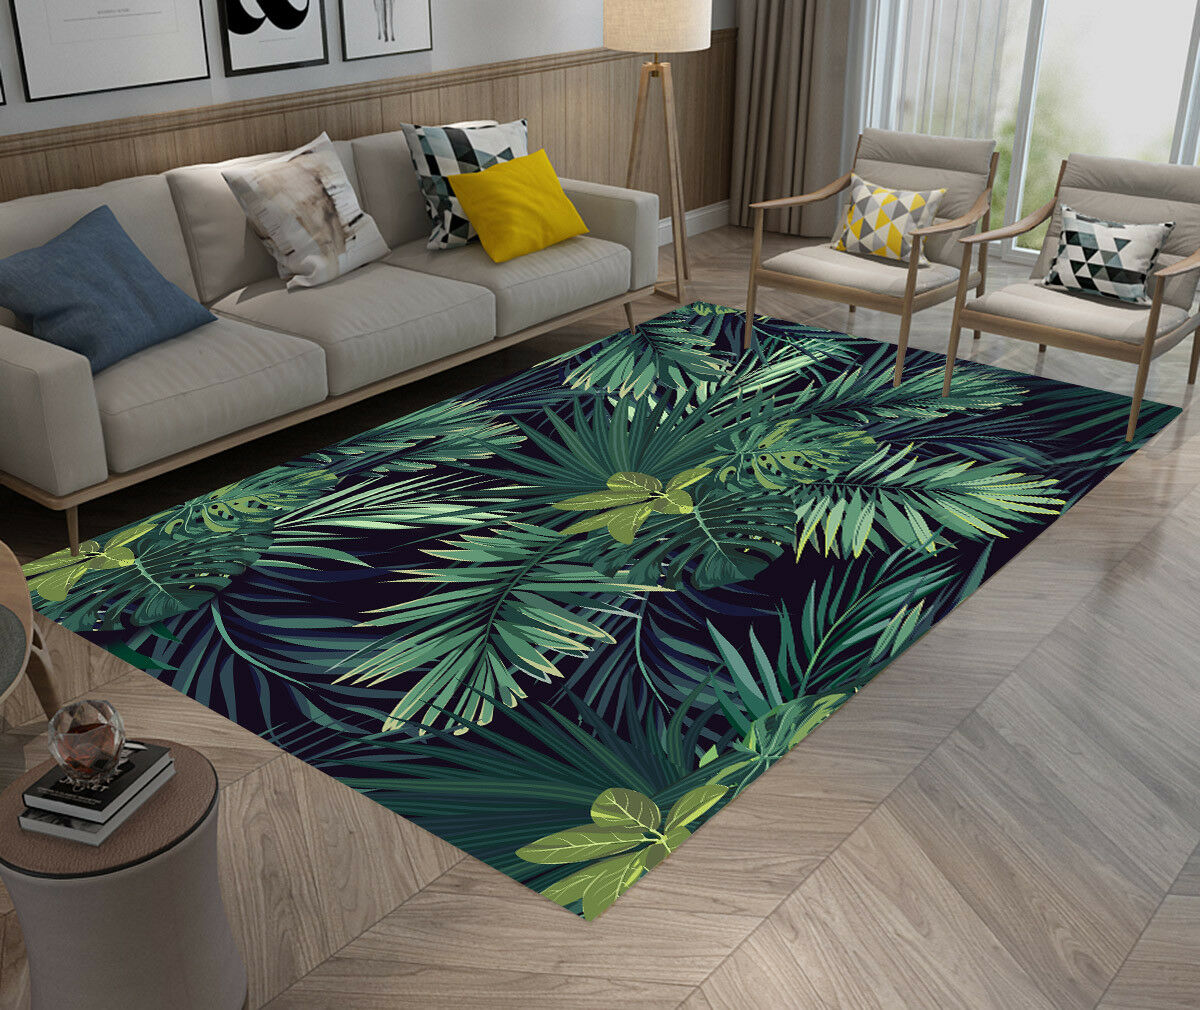 Tropical Palm Leaf Home Non-slip Area Rug Floor Mat Living Room Bedroom Carpet